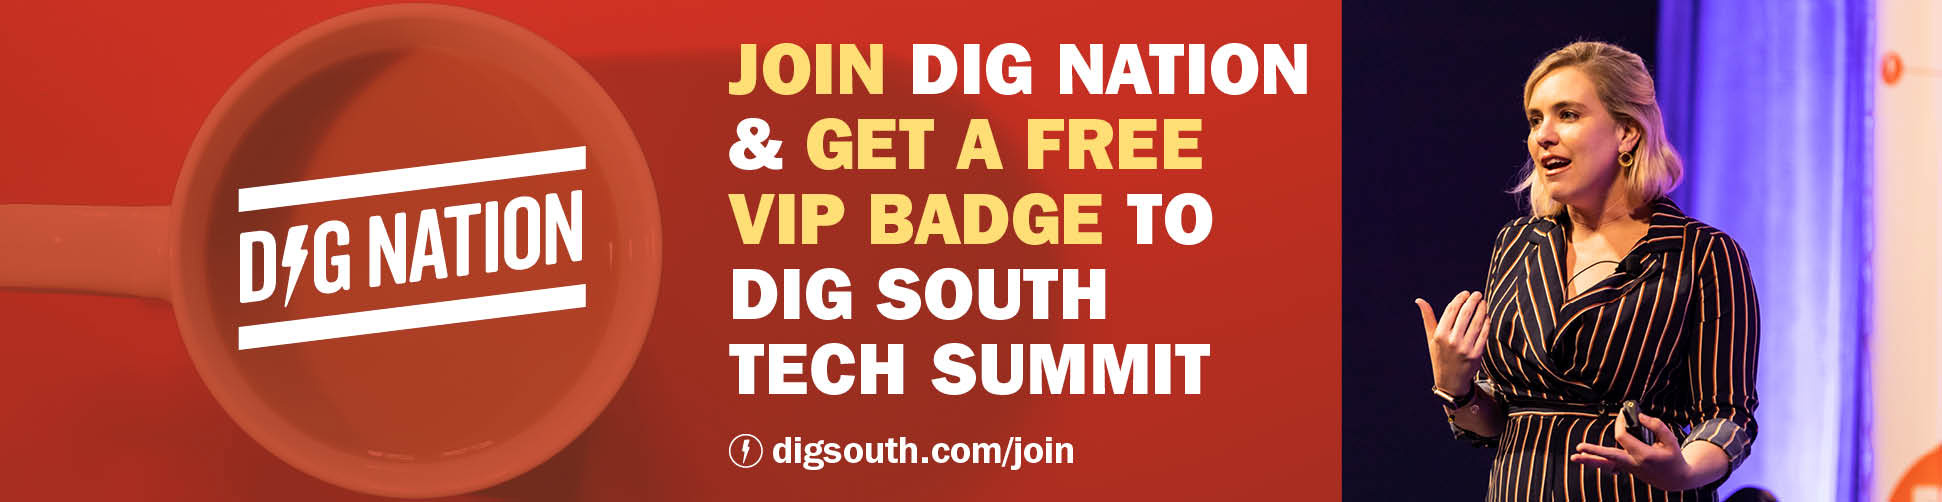 Go to DIG SOUTH Tech Summit